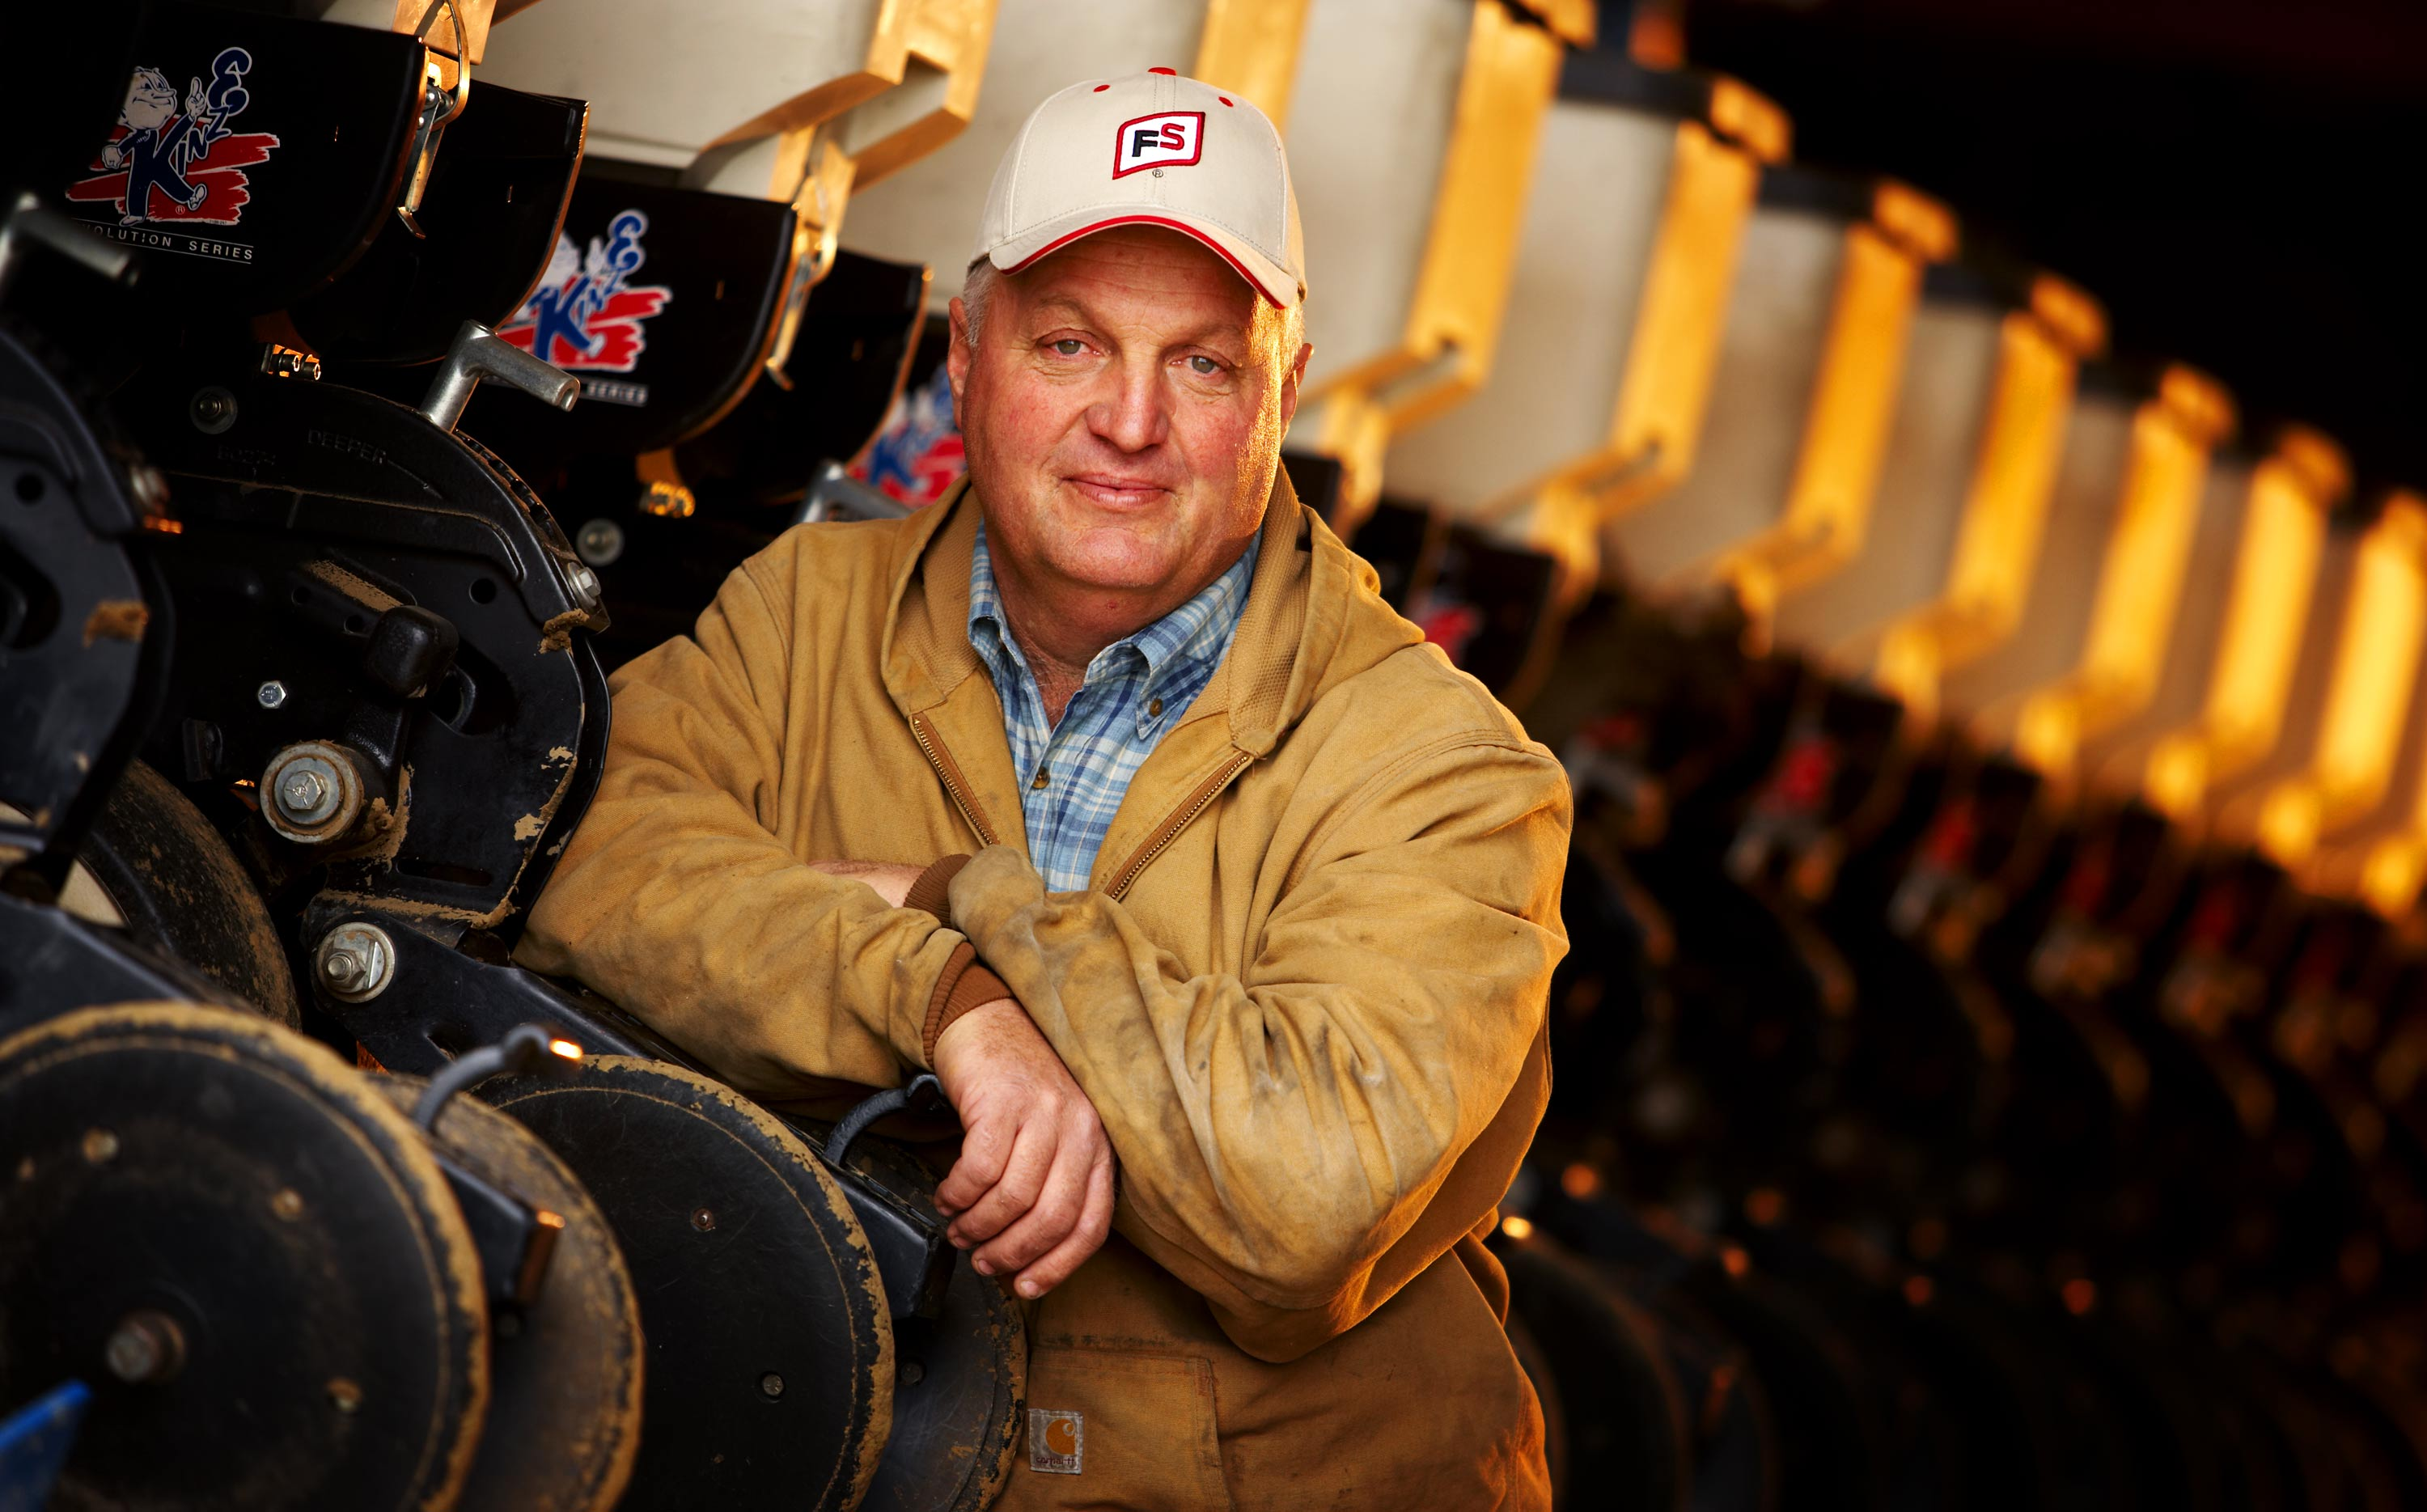 John Nienhuis | Agriculture & Farm Life Photographer | Wisconsin & Midwest Corporate Photography